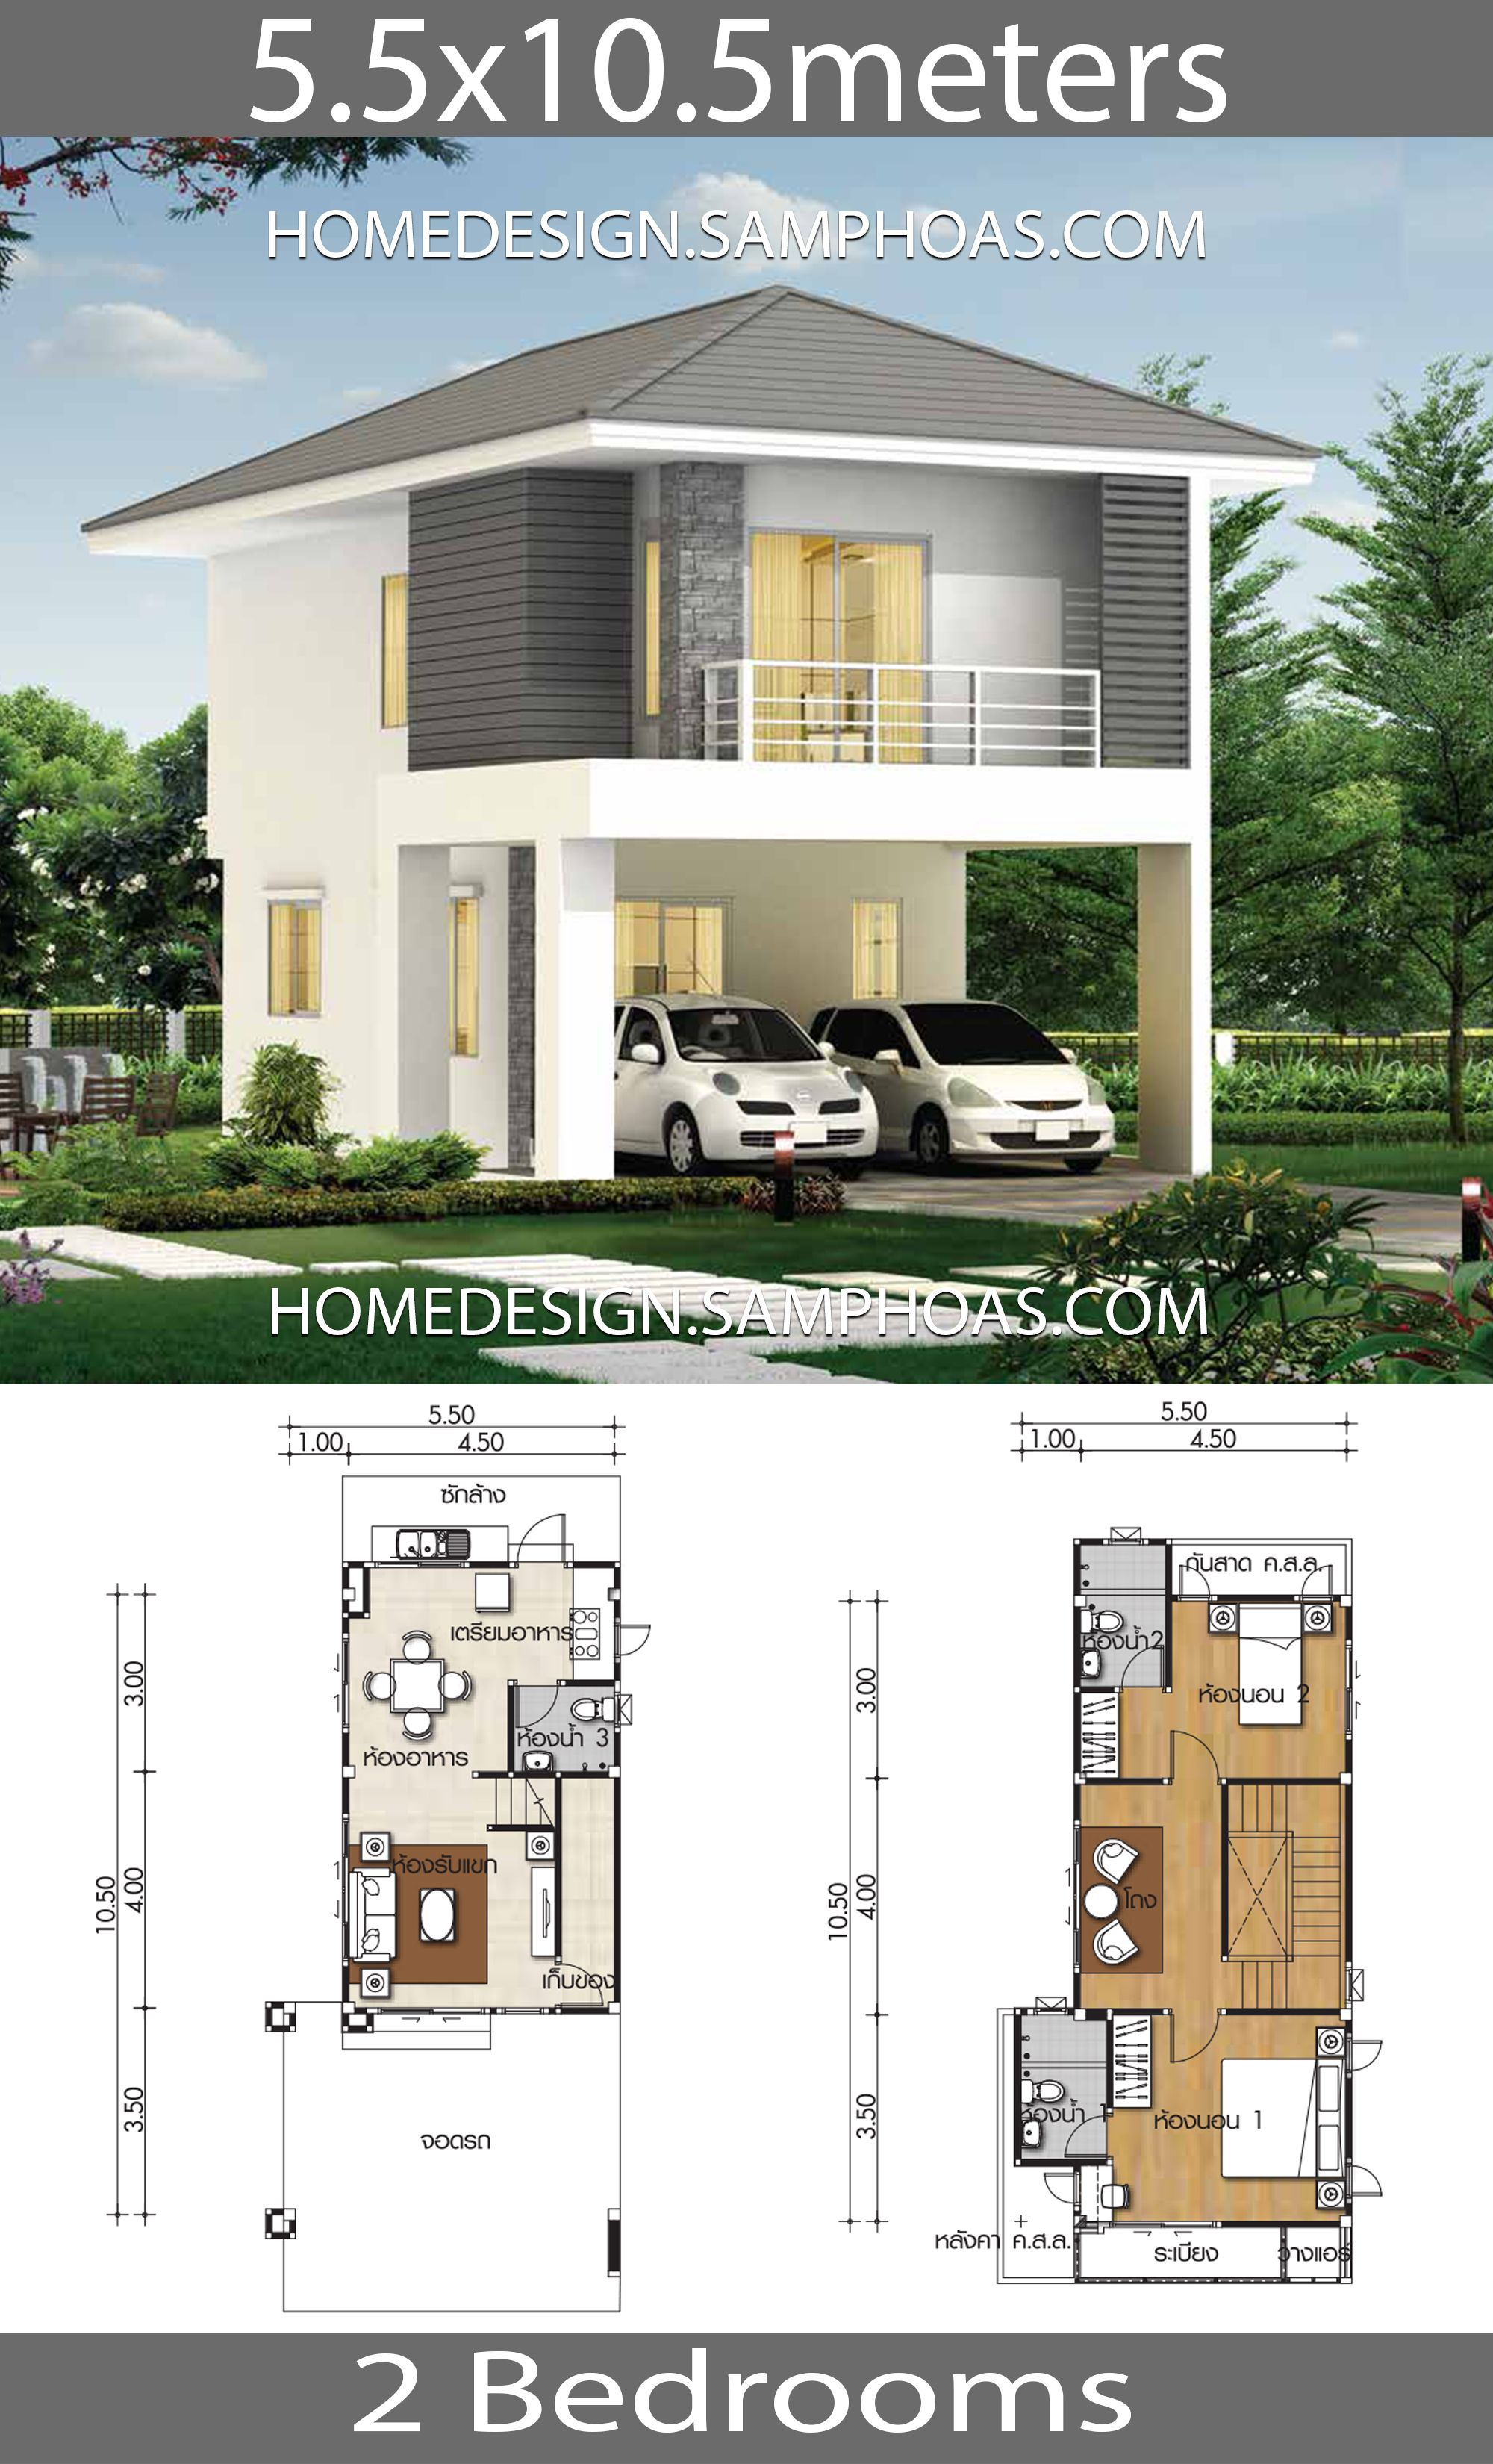 10 Beautiful House Plans You Will Love House Plans 3d In 2020 House Plans Beautiful House Plans Model House Plan